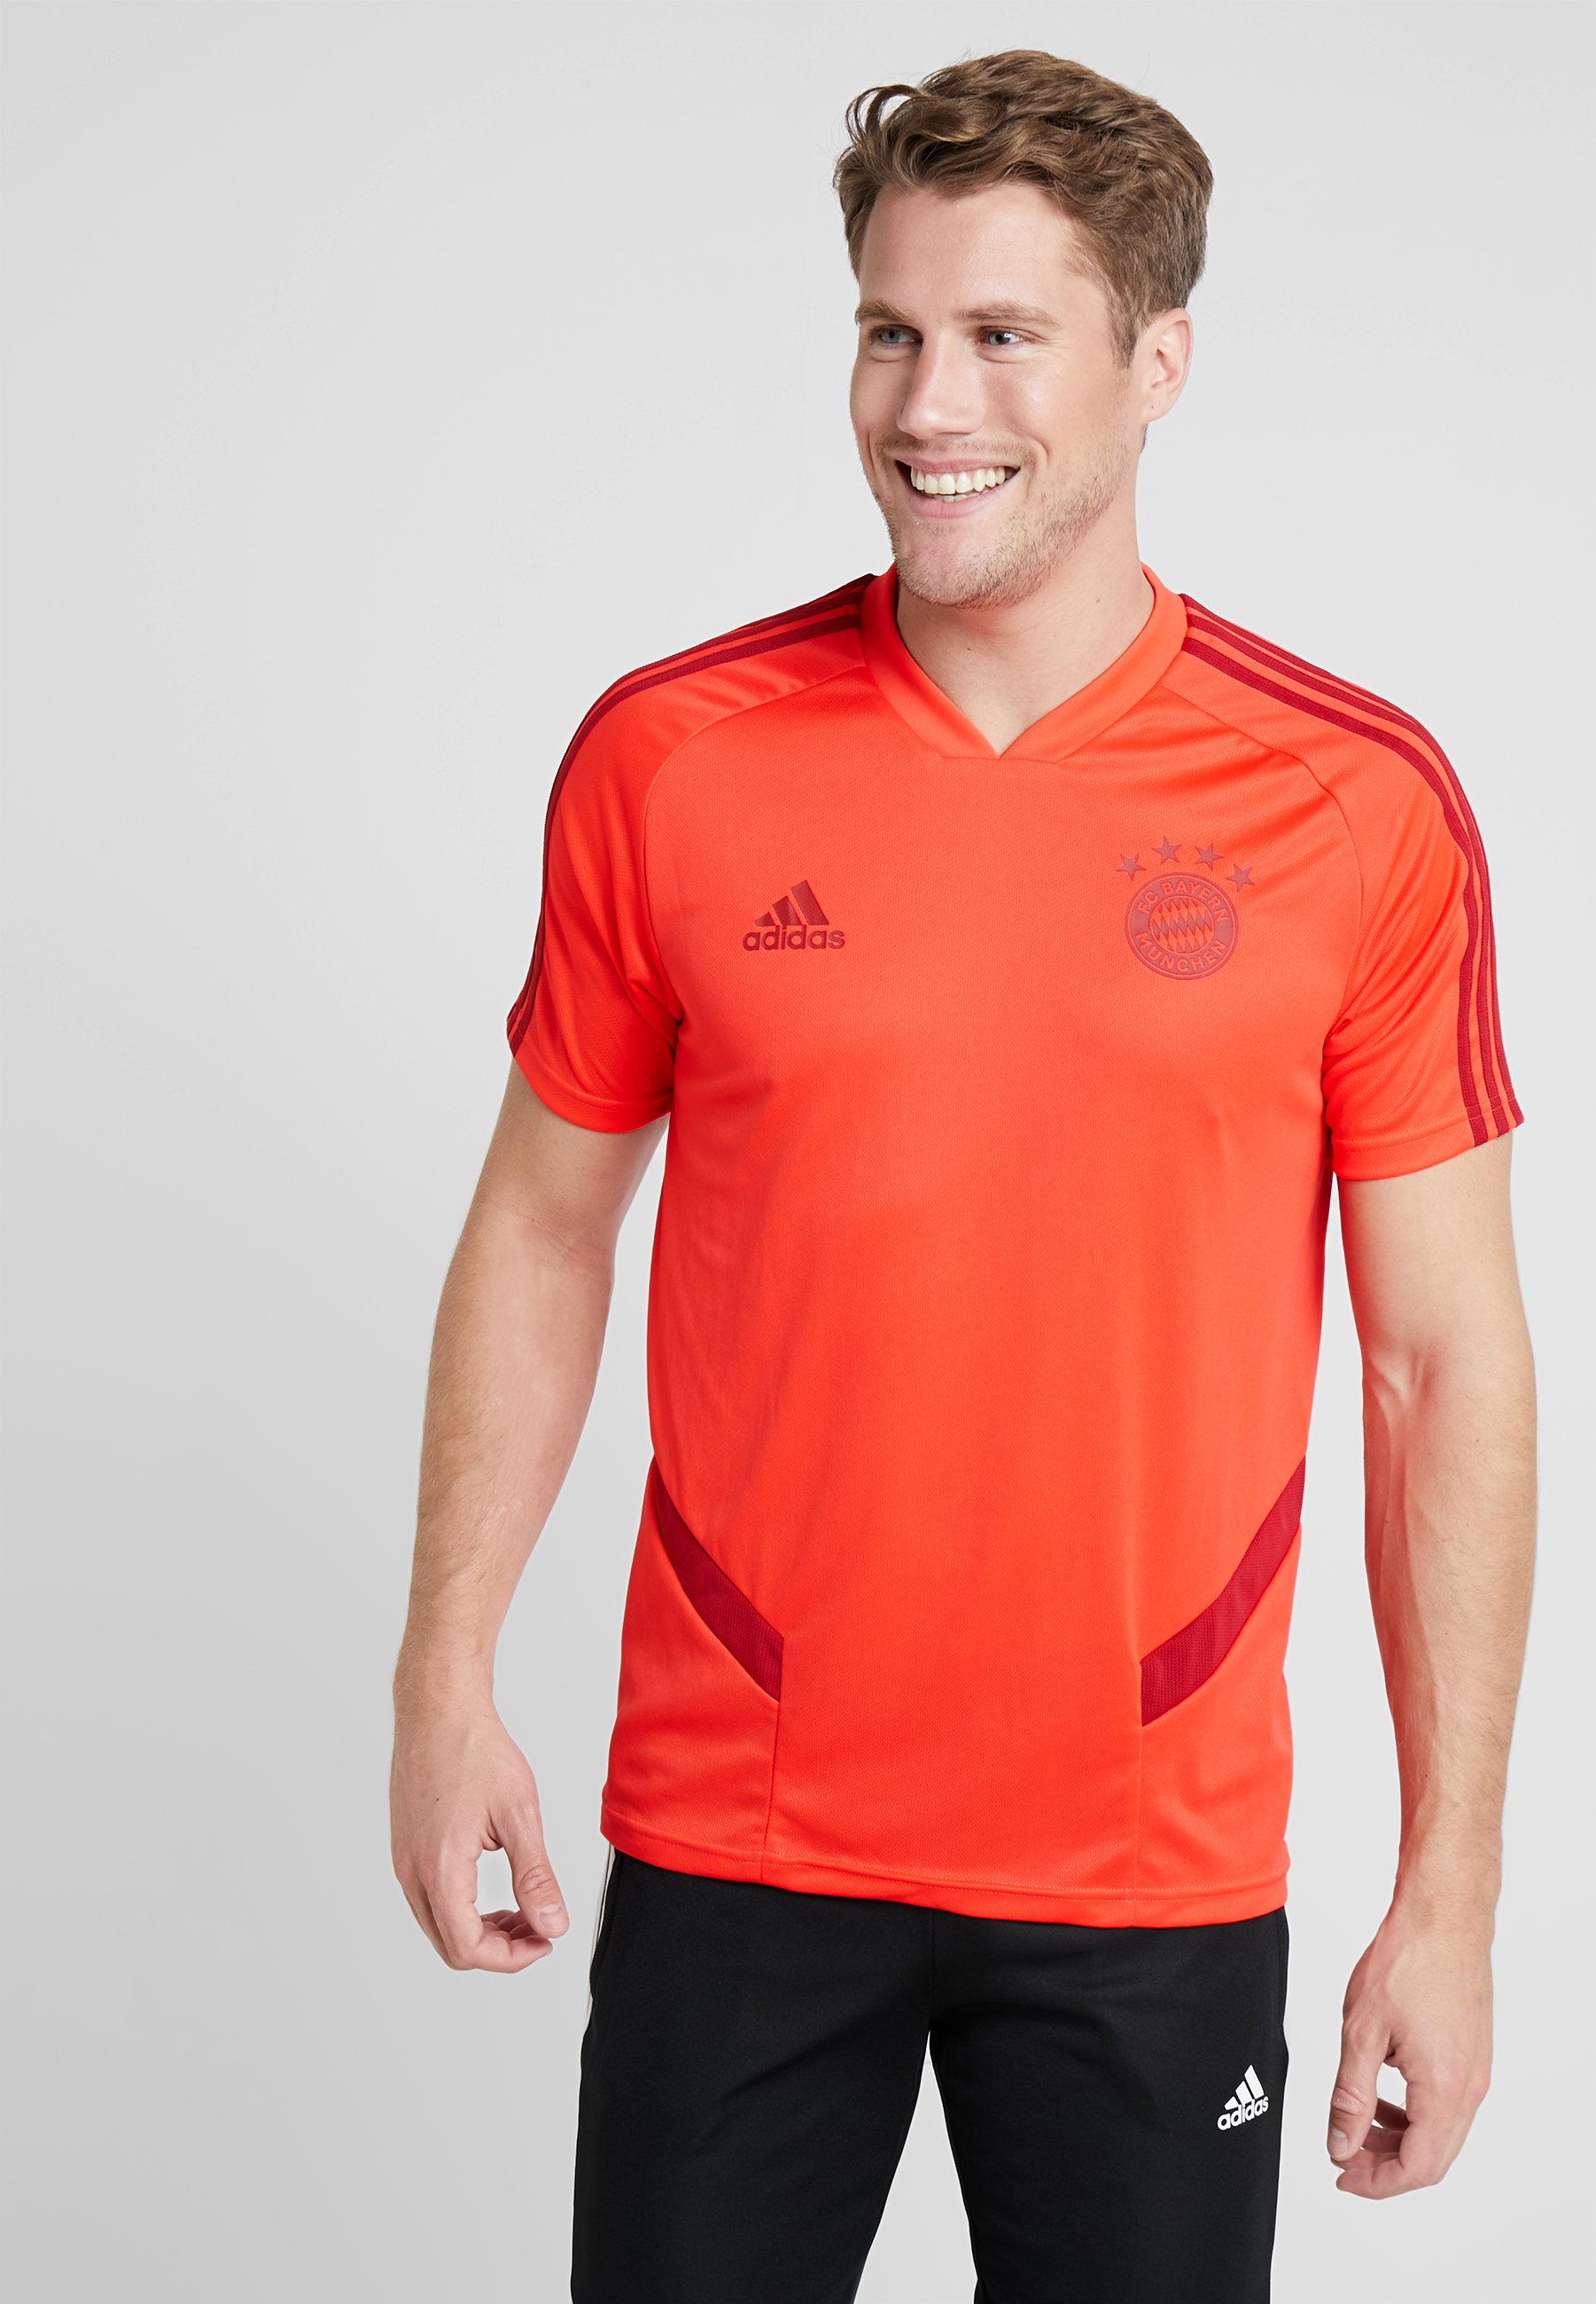 MünchenArticle Adidas Supporter Bayern Fc De Performance Red pUMqzVSG